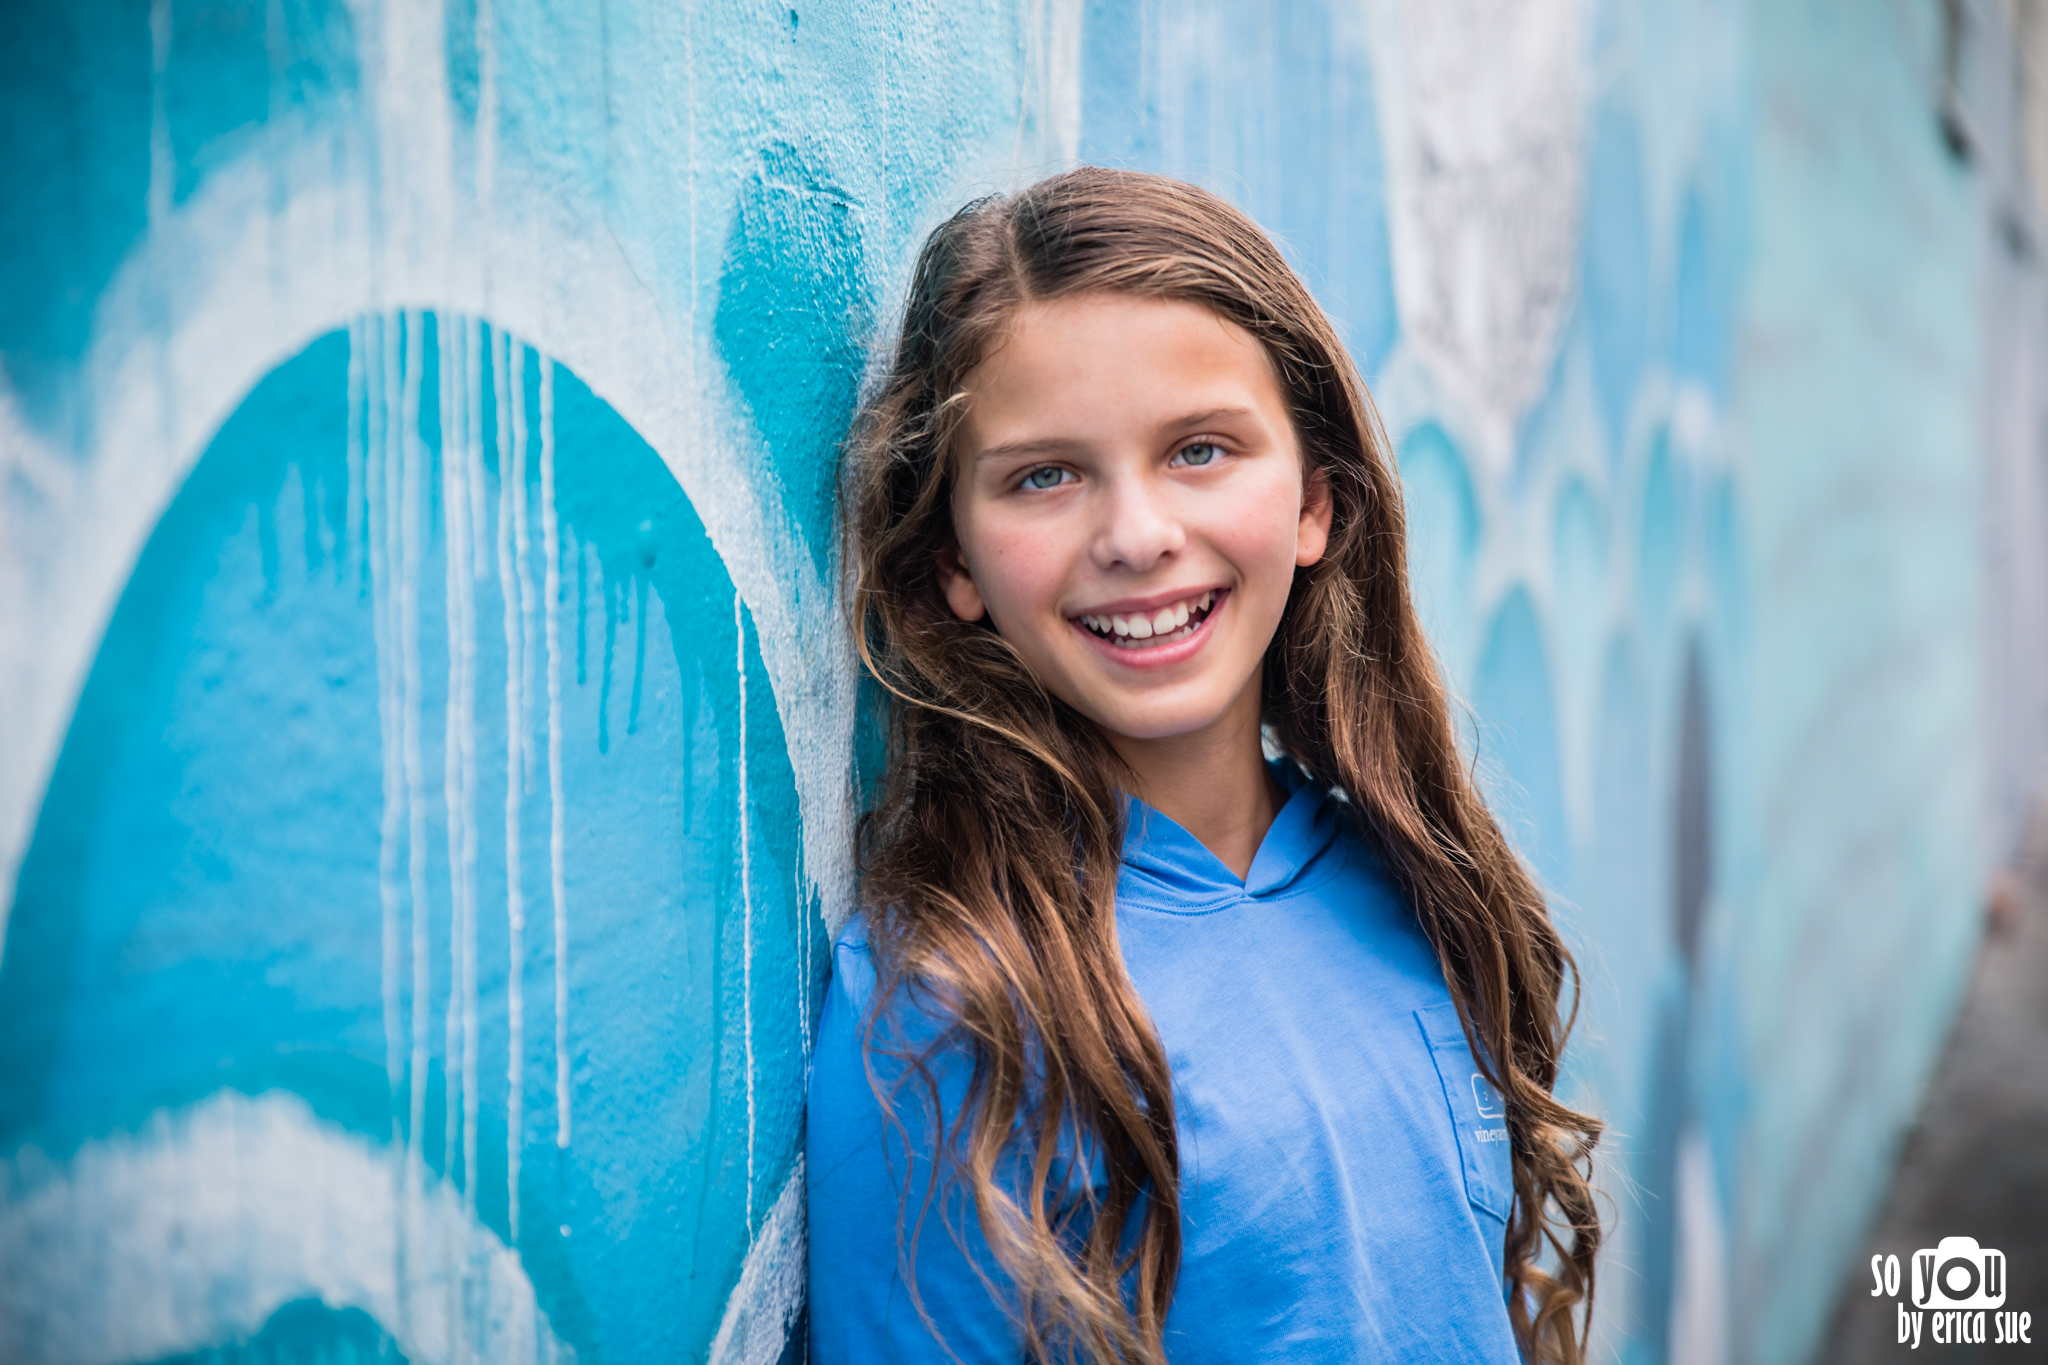 so-you-by-erica-sue-wynwood-walls-miami-photography-mitzvah-pre-shoot-5534.jpg